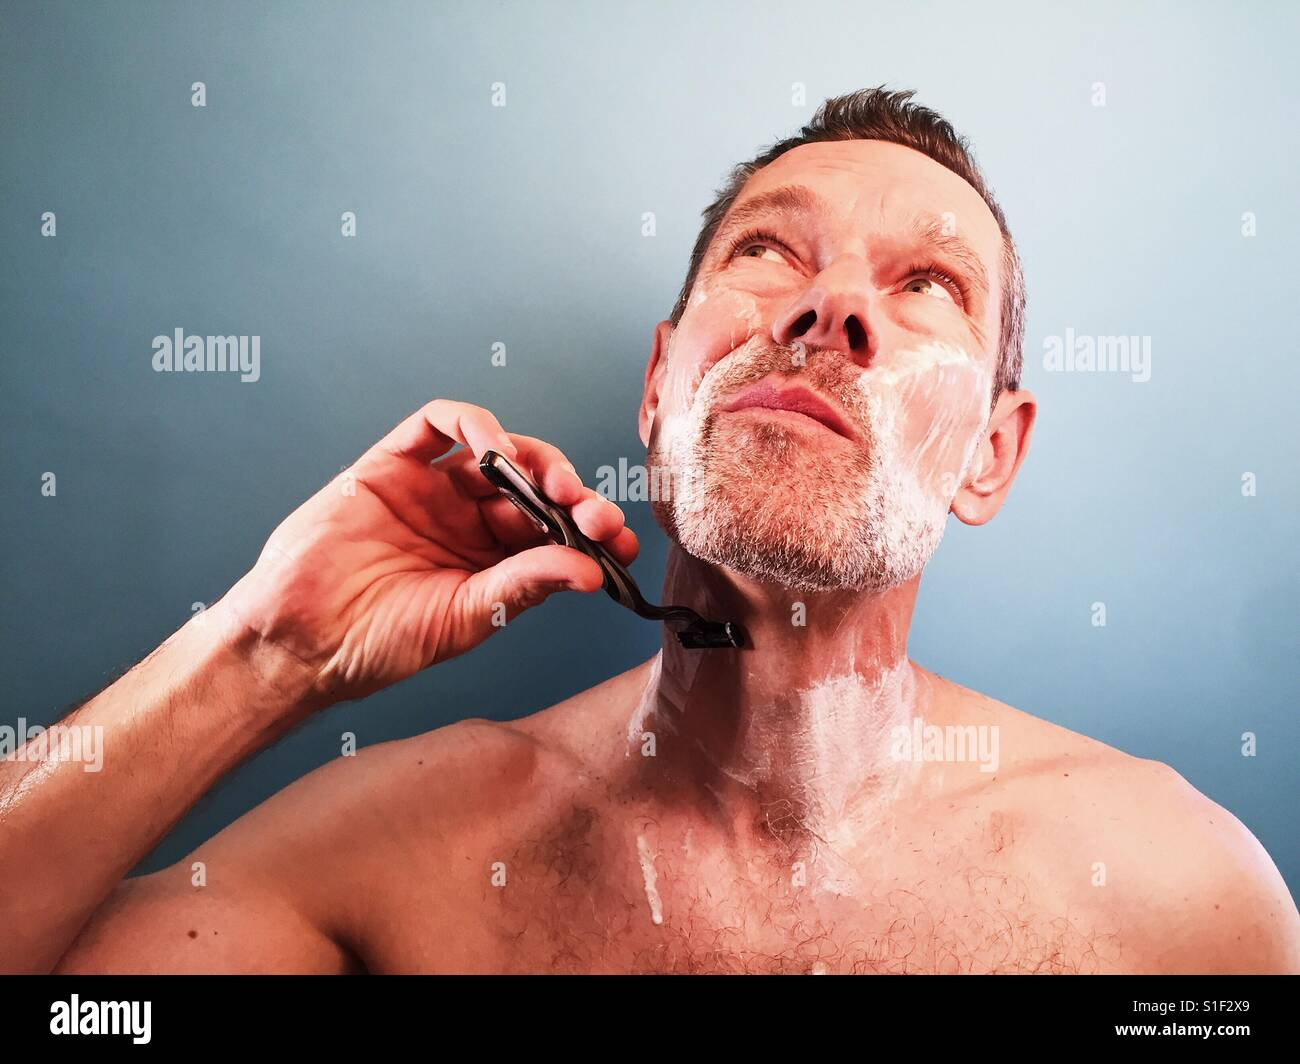 A man shaving - Stock Image